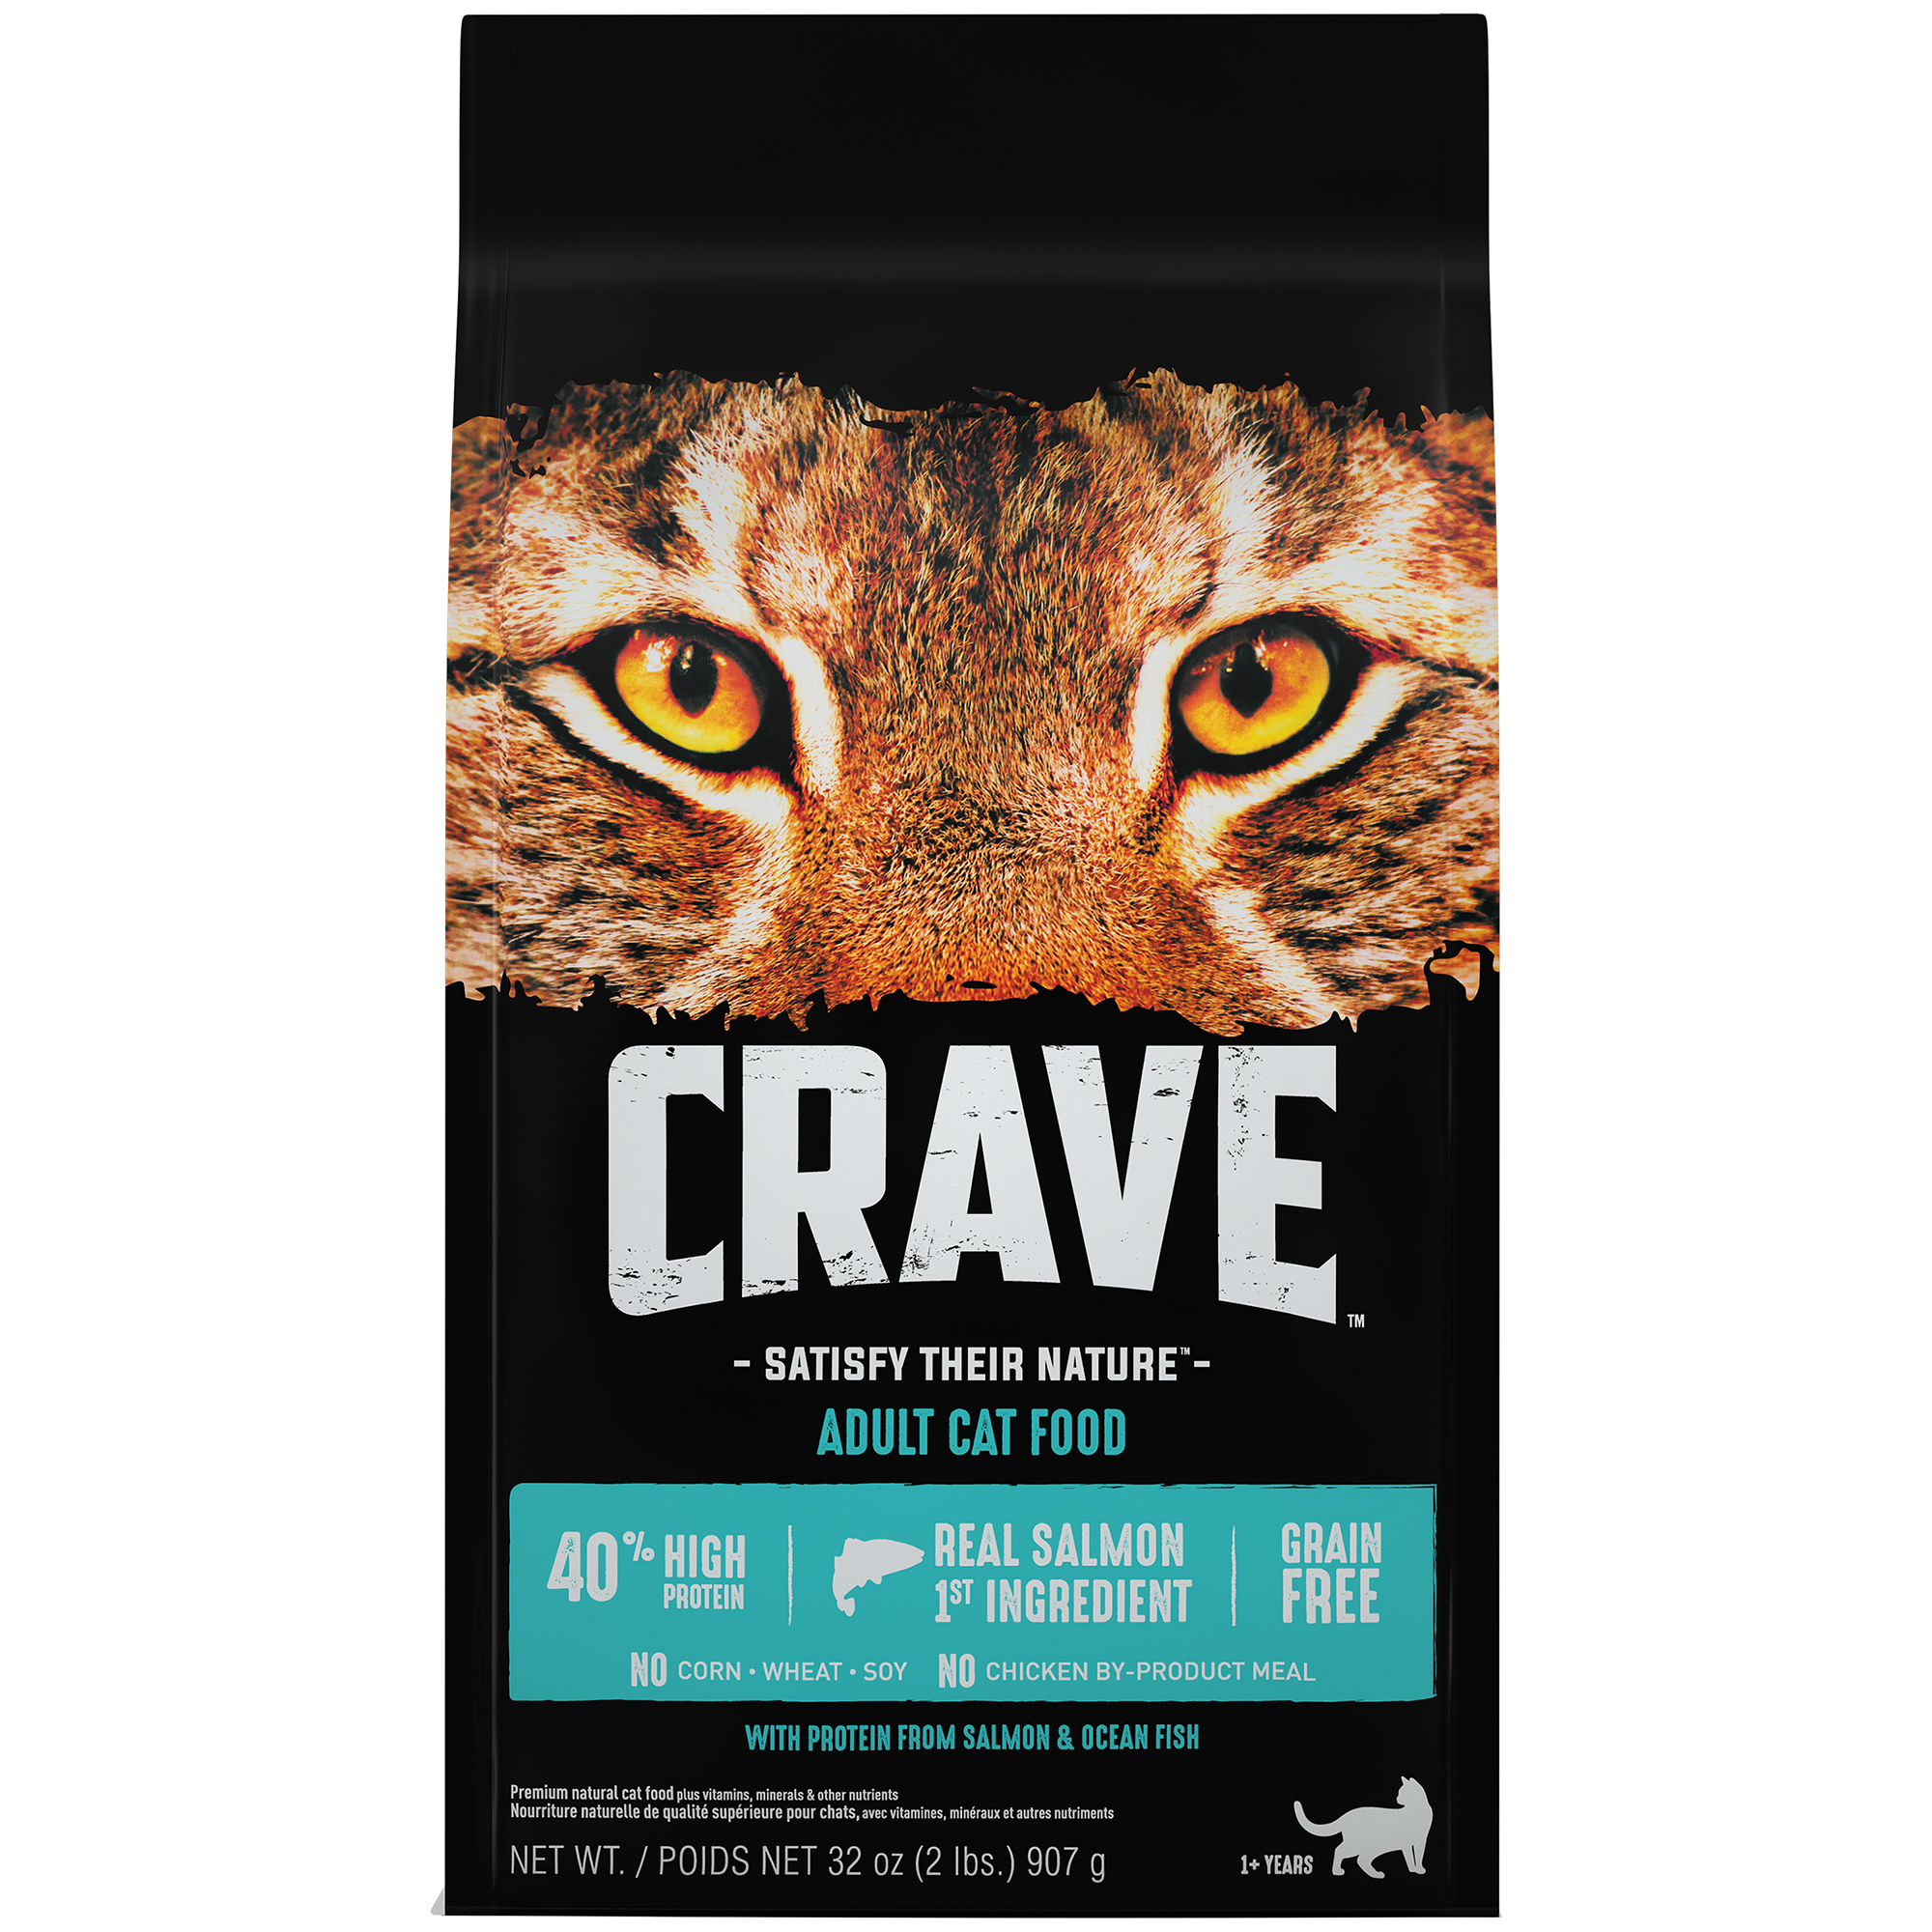 Crave Grain-Free With Protein From Salmon & Ocean Fish Dry Adult Cat Food, 2 lb